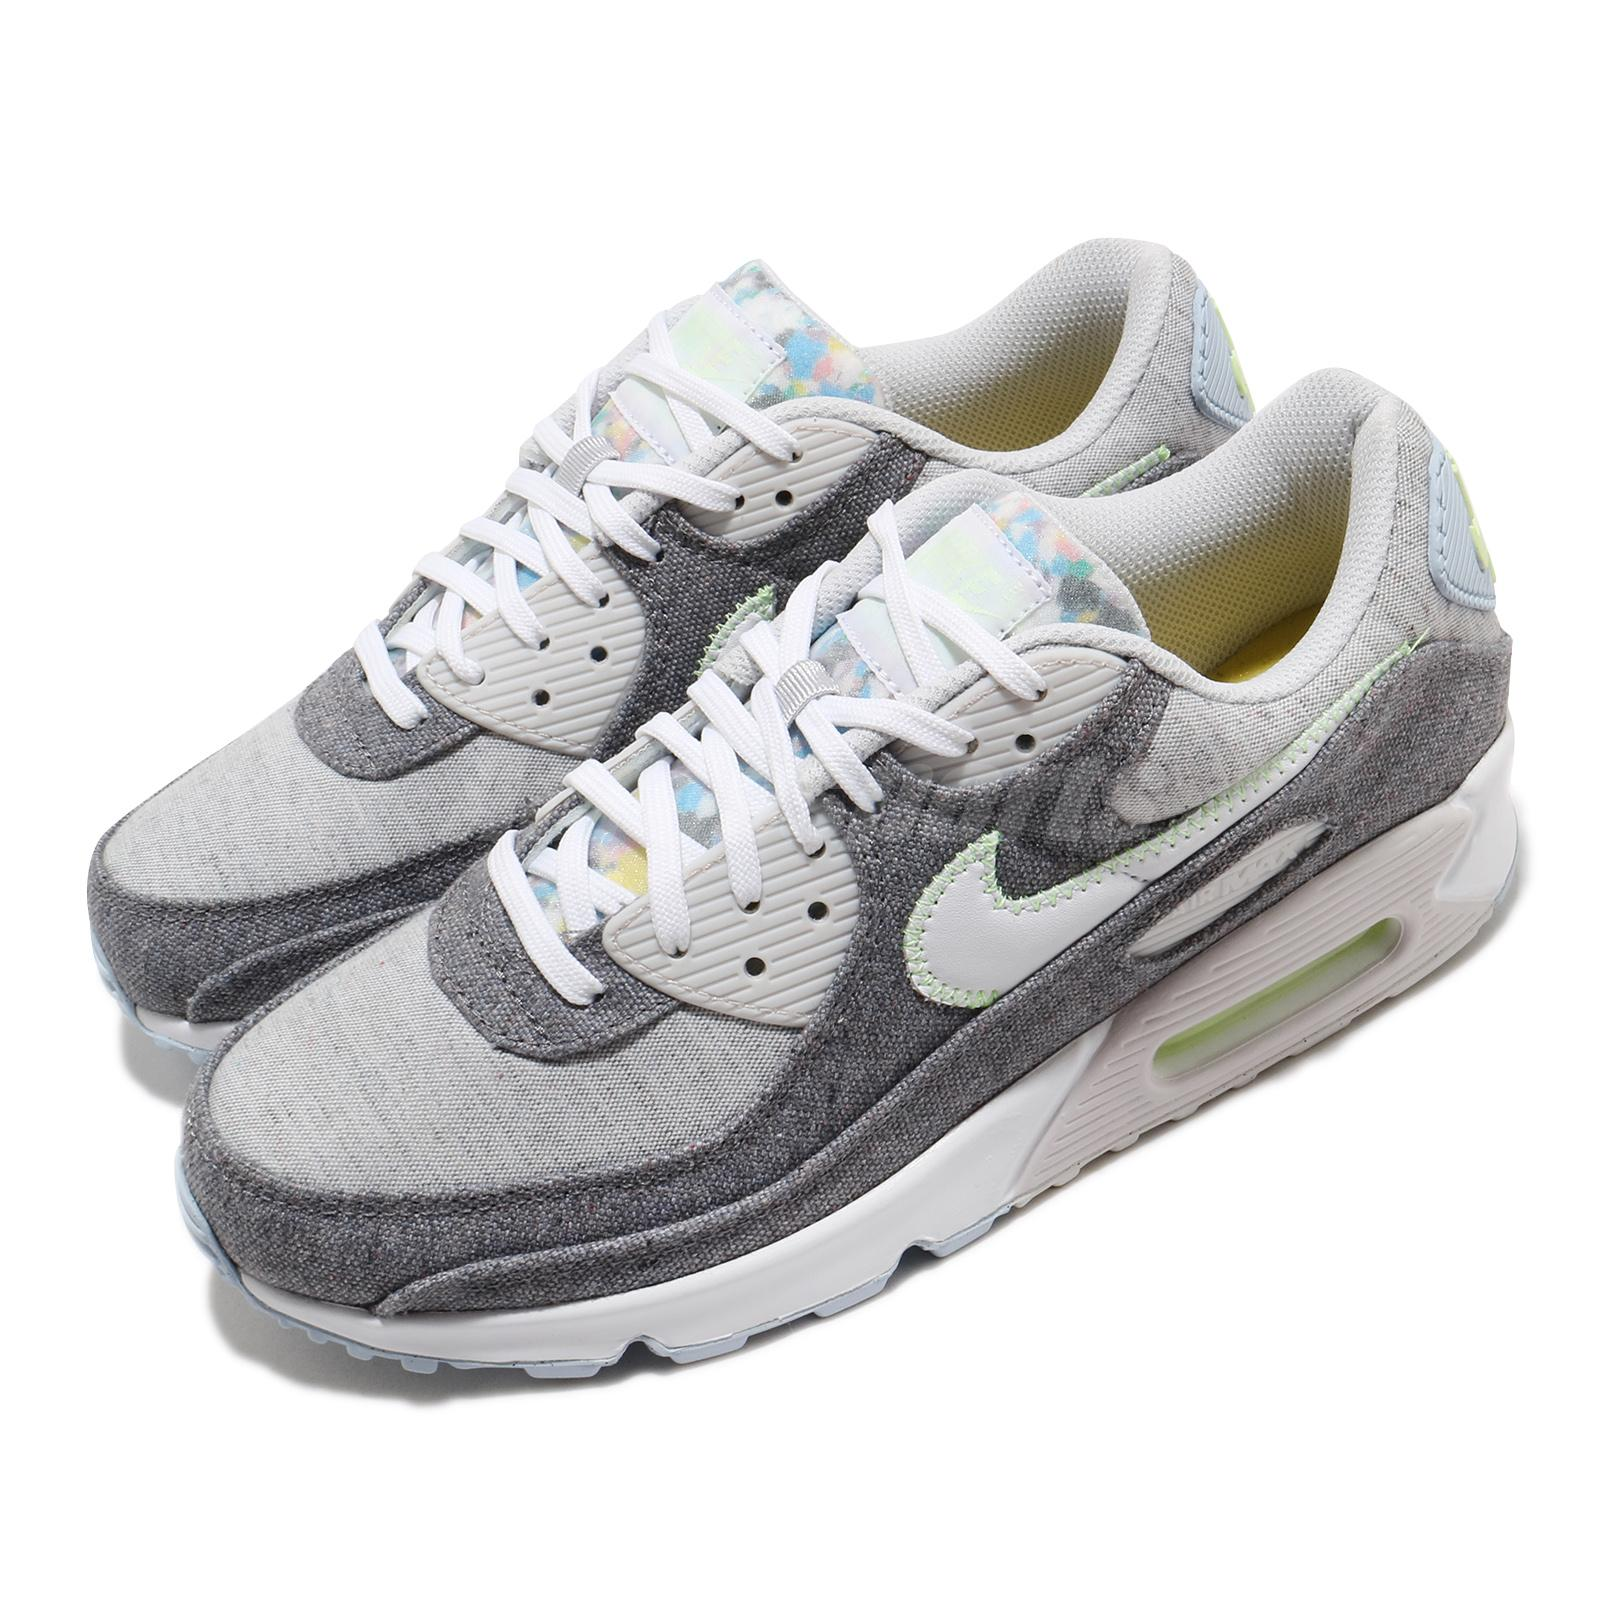 Details about Nike Air Max 90 NRG Crater Vast Grey Volt White Men Casual  Lifestyle CK6467-001